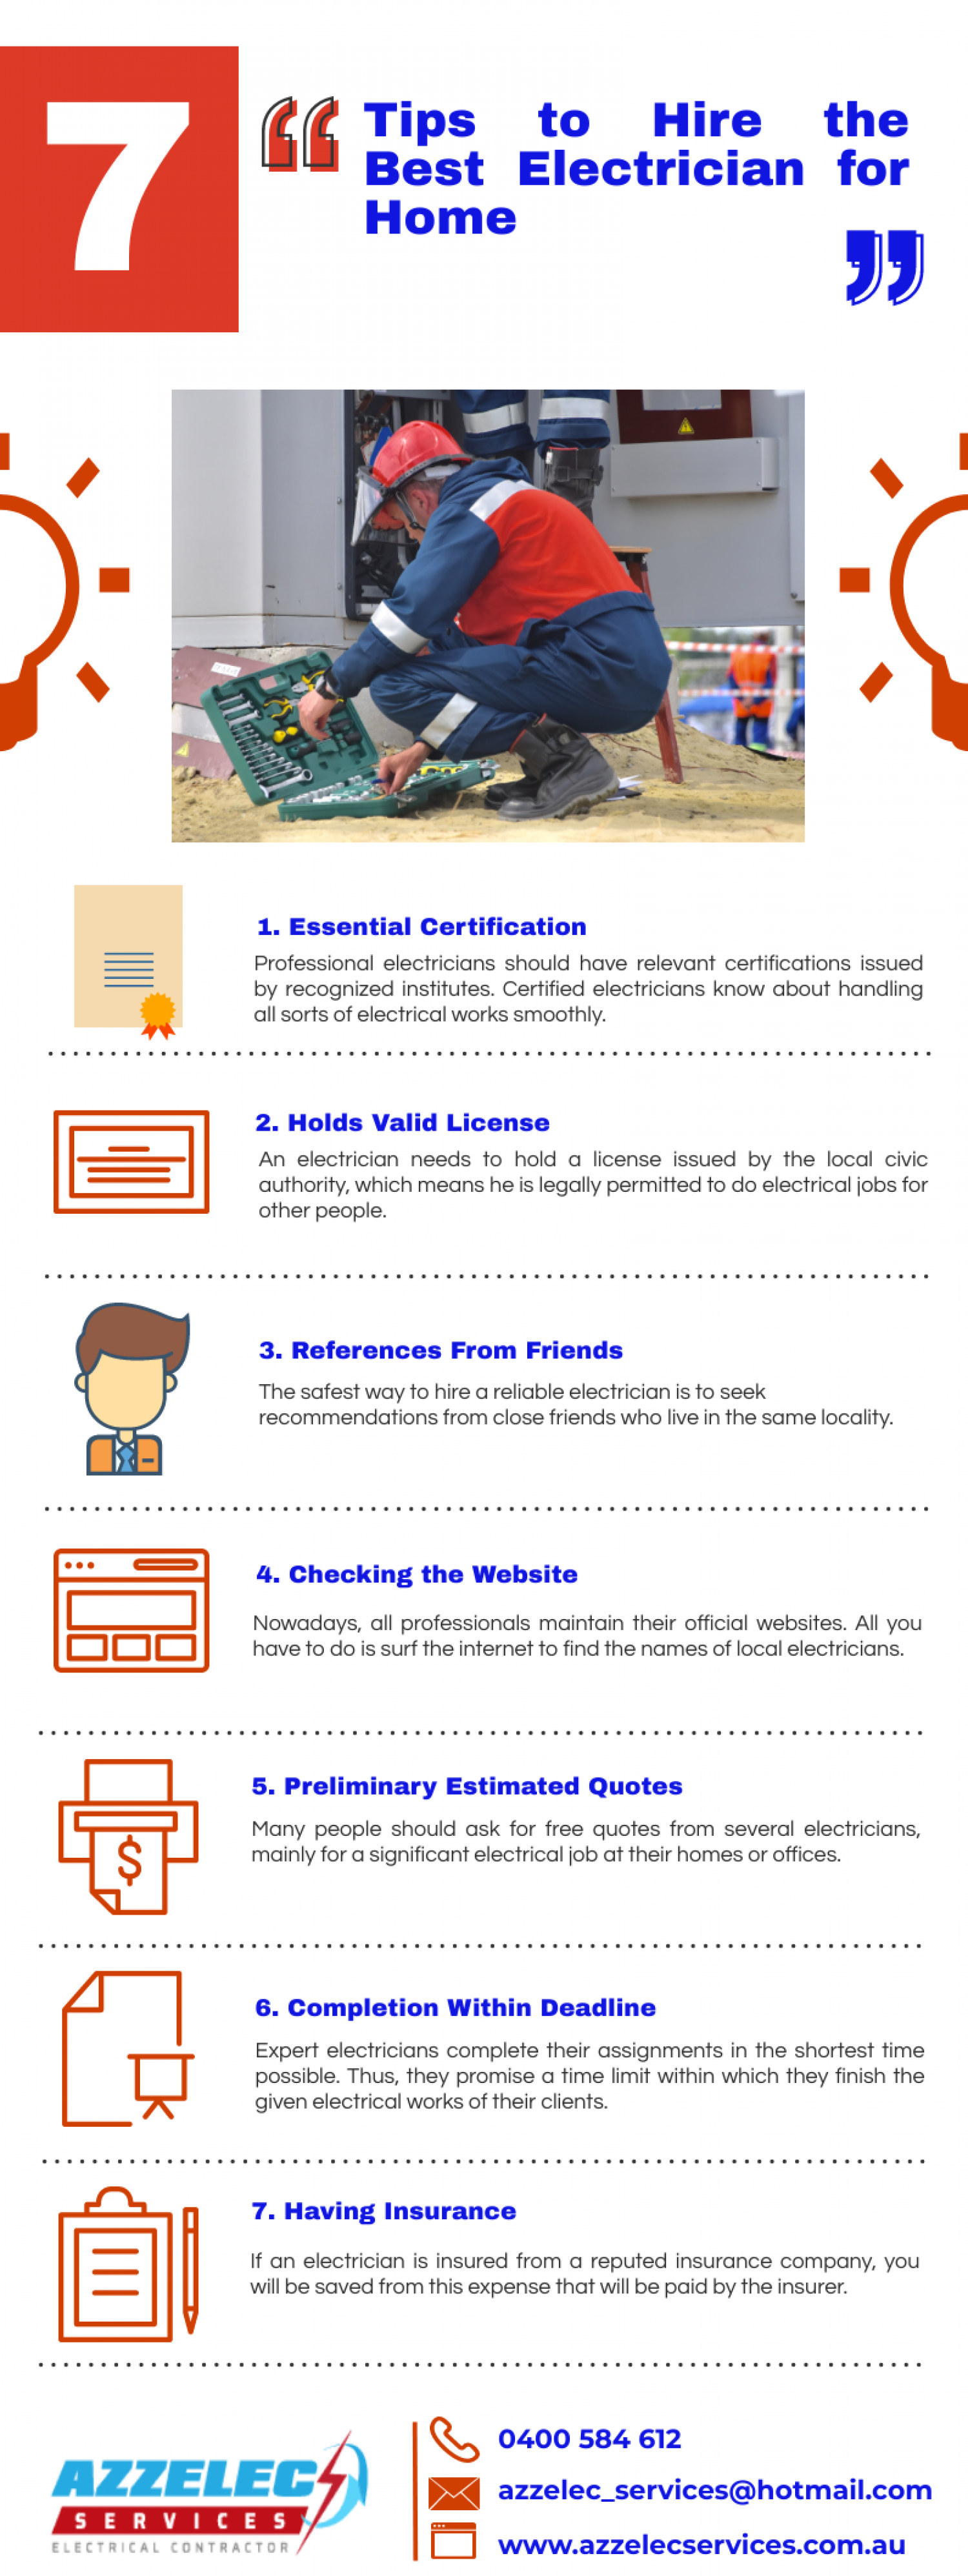 7 Tips to Hire the Best Electrician For Home Infographic